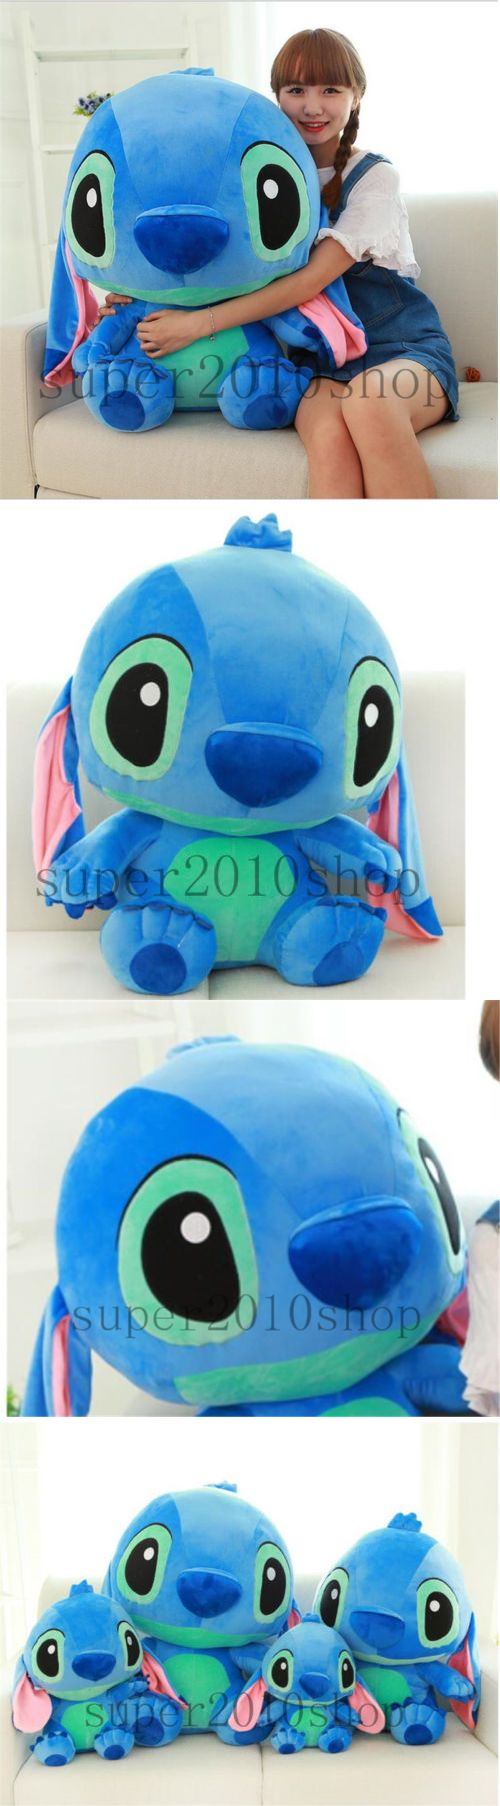 Lilo and Stitch 44035: 32 Giant Hung Big Lilo And Stitch Huge Soft Stuffed Plush Toy Doll Valentine Gift -> BUY IT NOW ONLY: $78.88 on eBay!